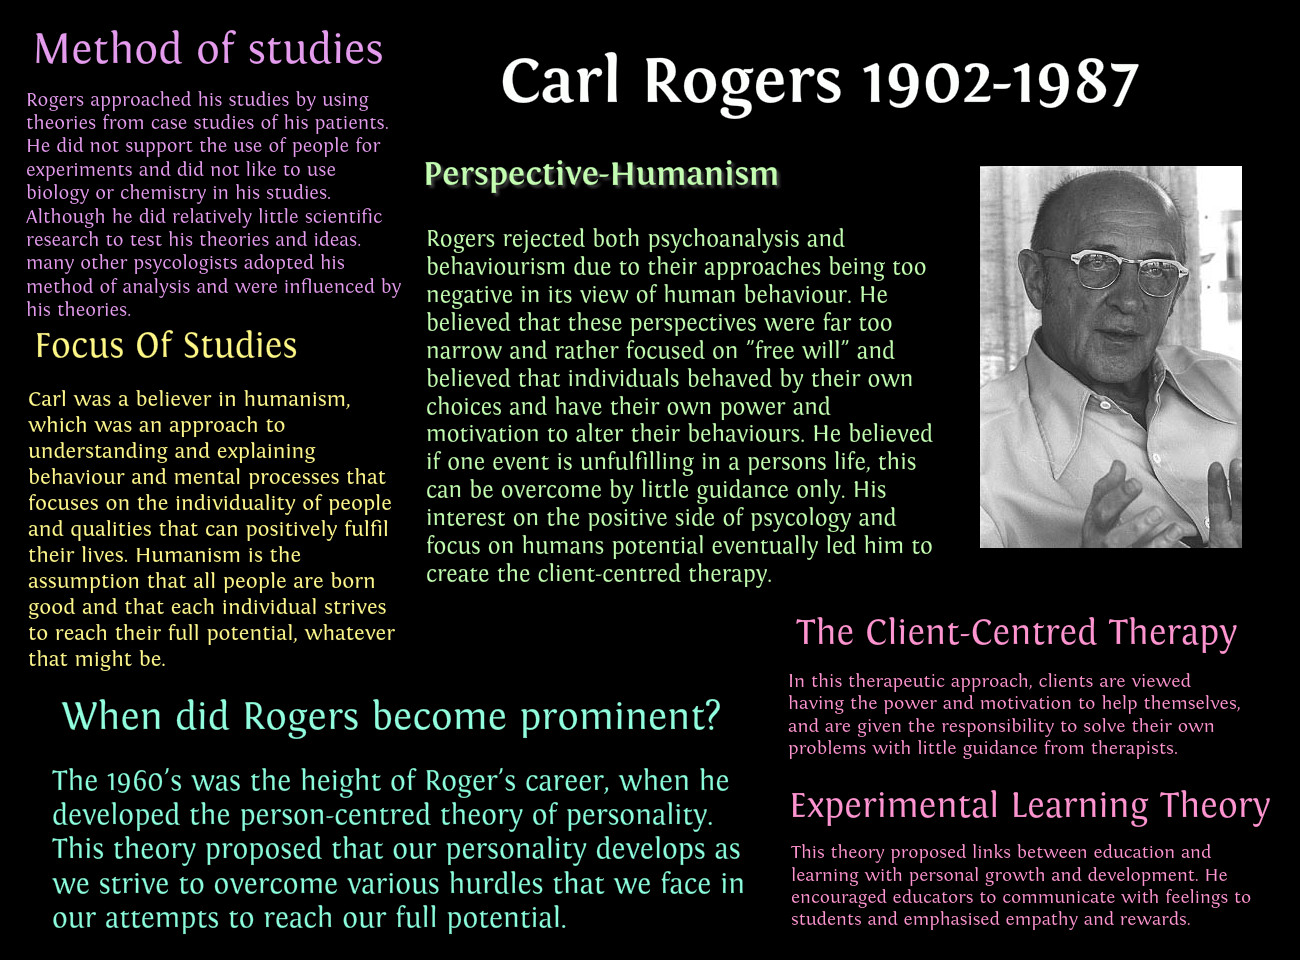 study of person centered therapy Carl rogers's person-centered therapy and theory of personality change emphasize a unique subjective way of being, in which a therapist's genuine congruence is of utmost importance in the wounded combat veteran's healing and rebuilding of life.